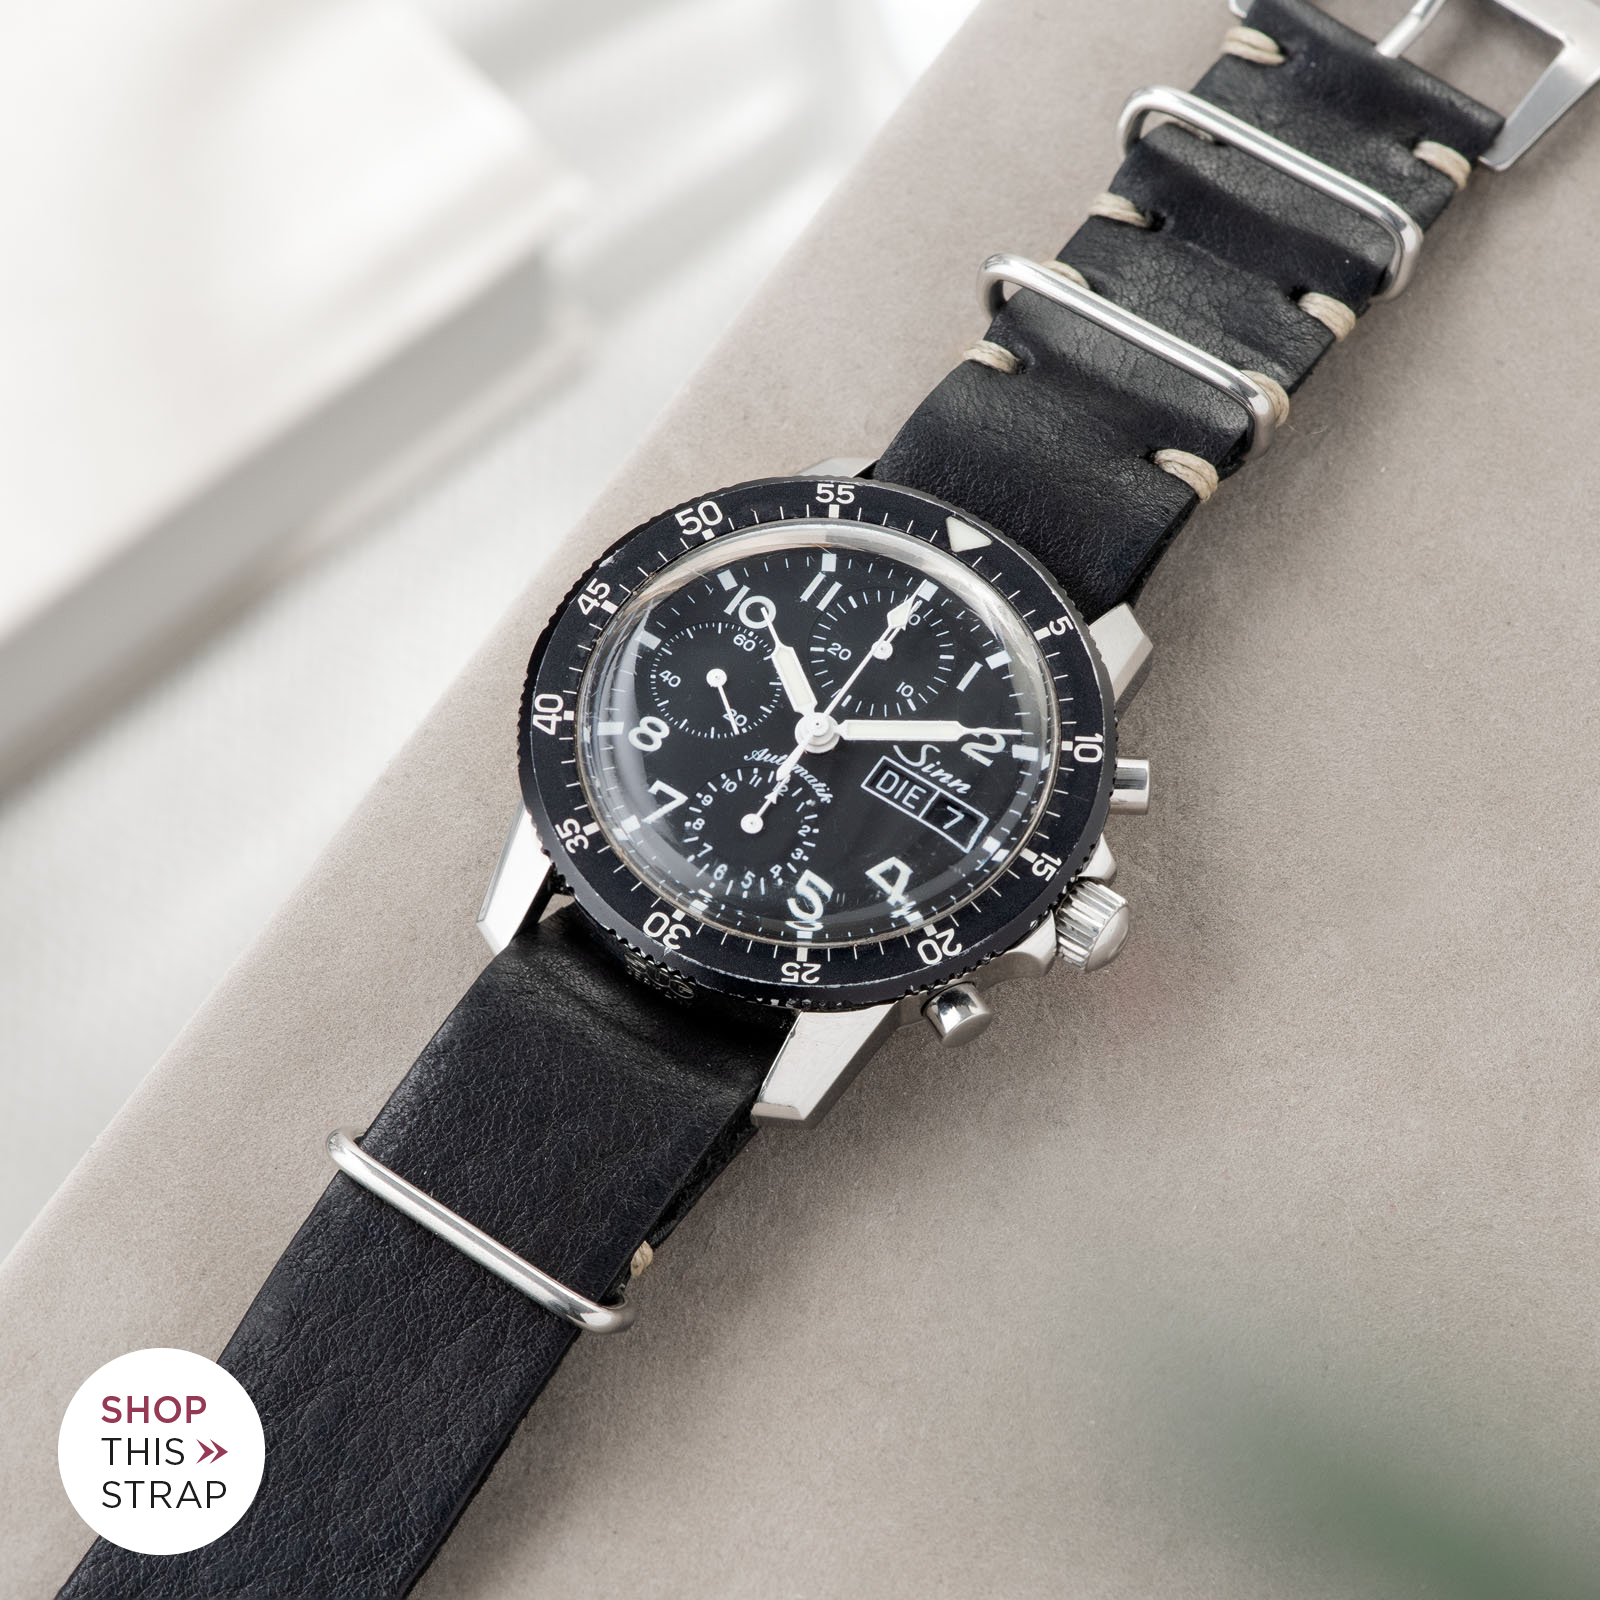 Bulang and Sons_Strap Guide_Sinn 103_Black Nato Leather Watch Strap